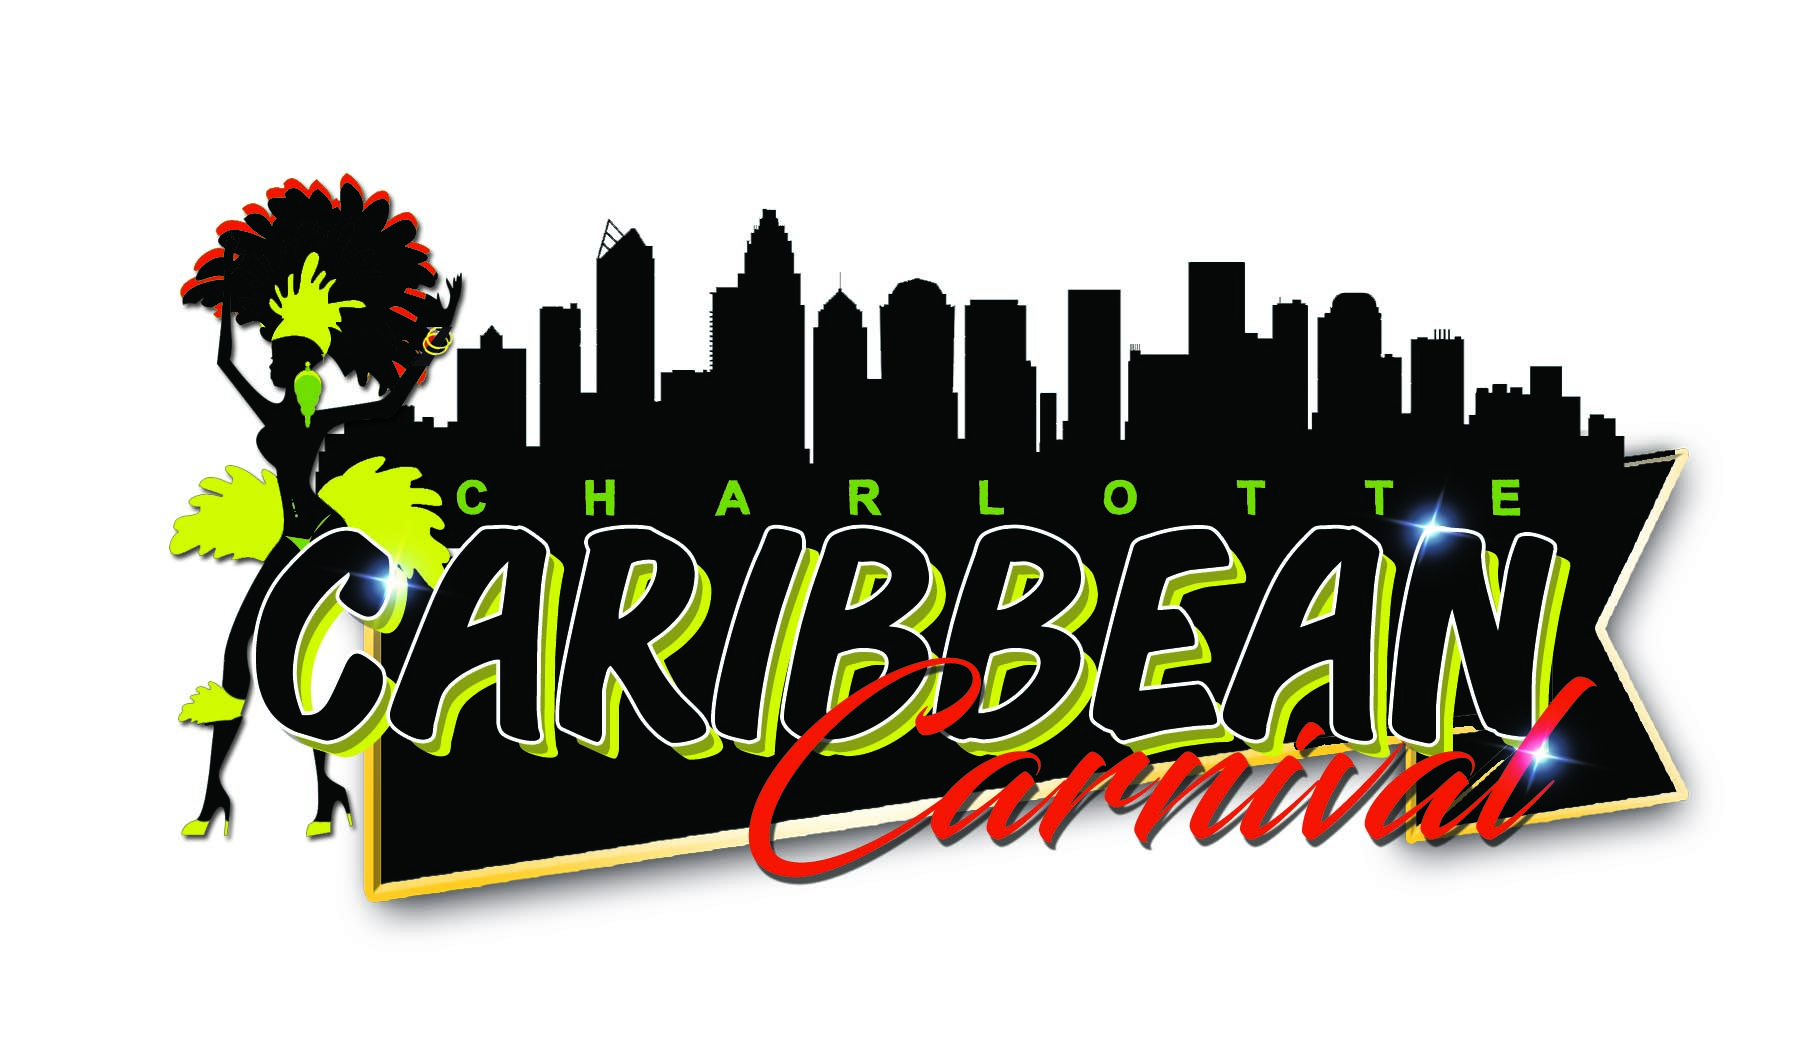 Charlotte Caribbean Carnival Events.